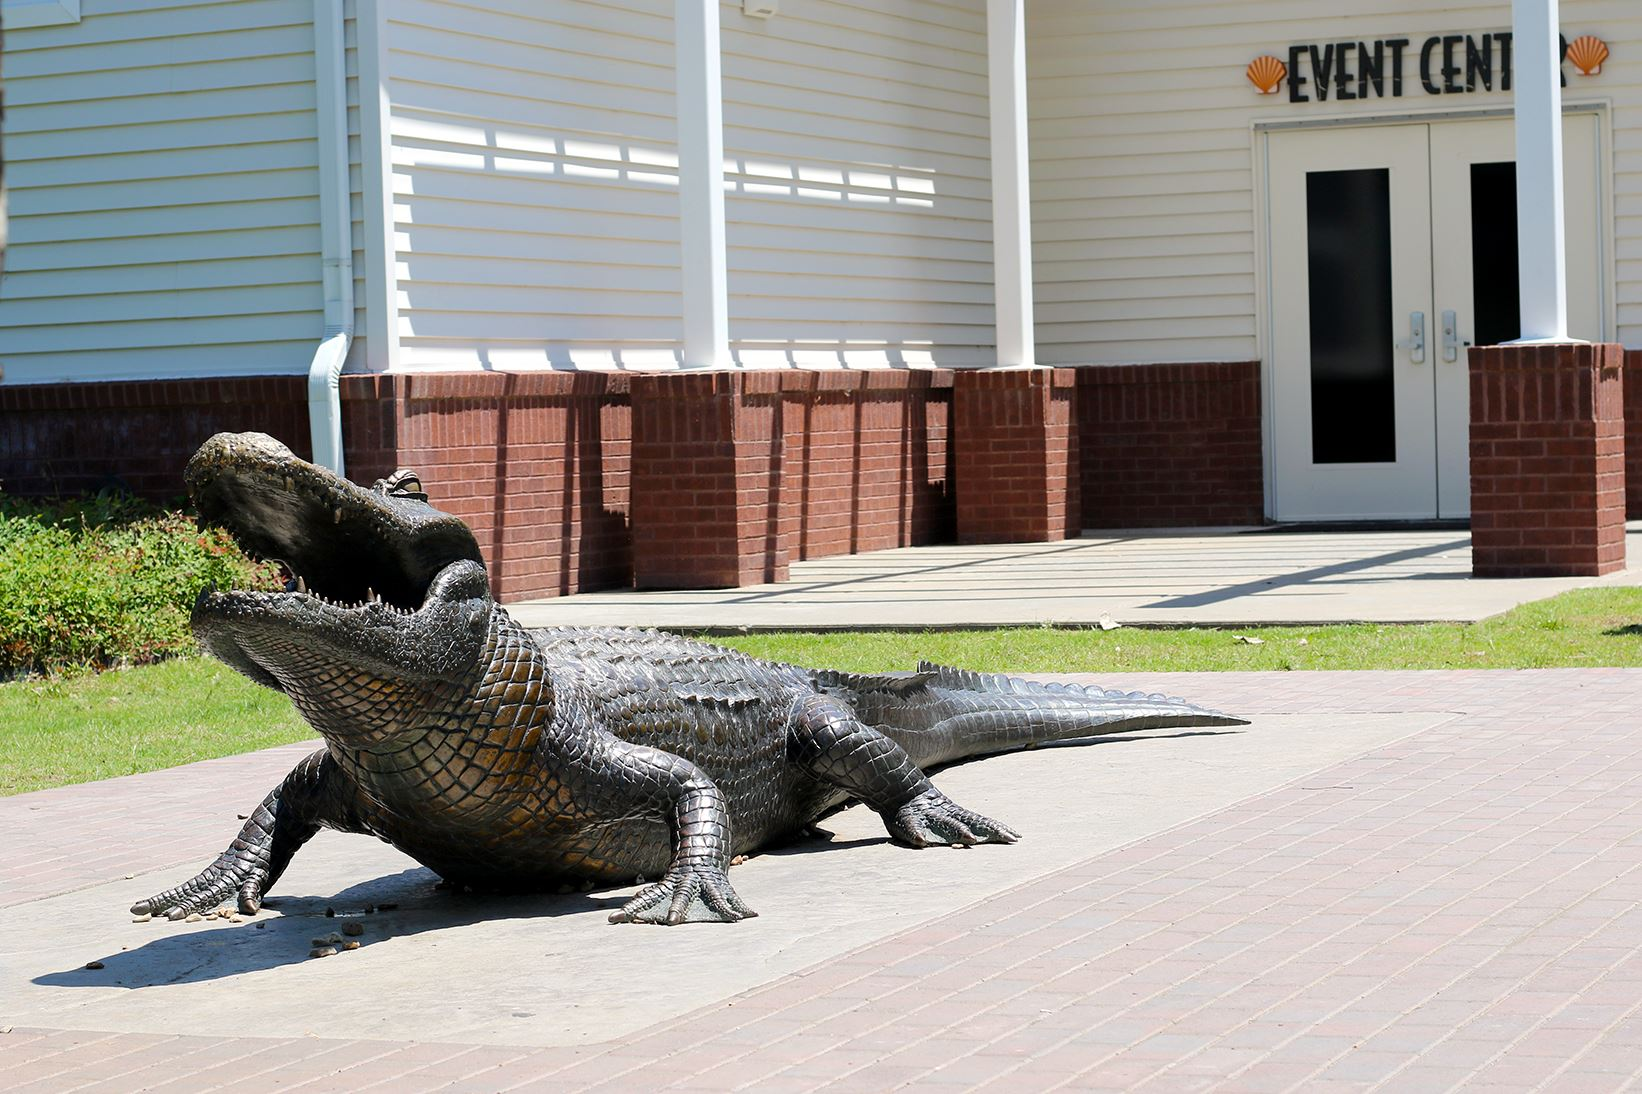 A bronze statue of an alligator in front of a white building.